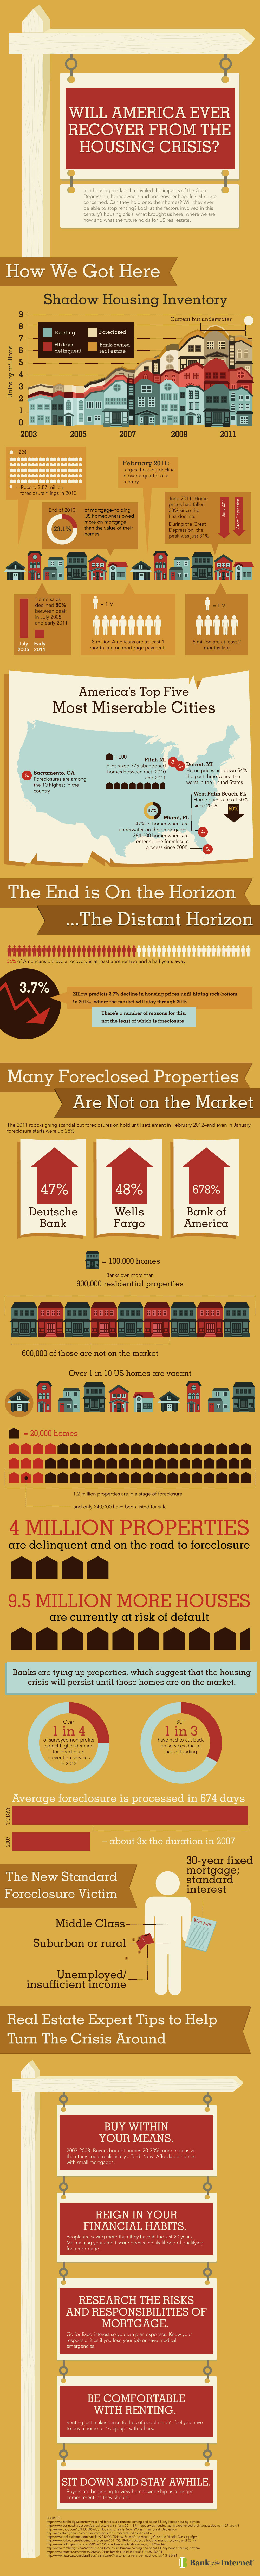 Bank of Internet Housing Crisis Infographic